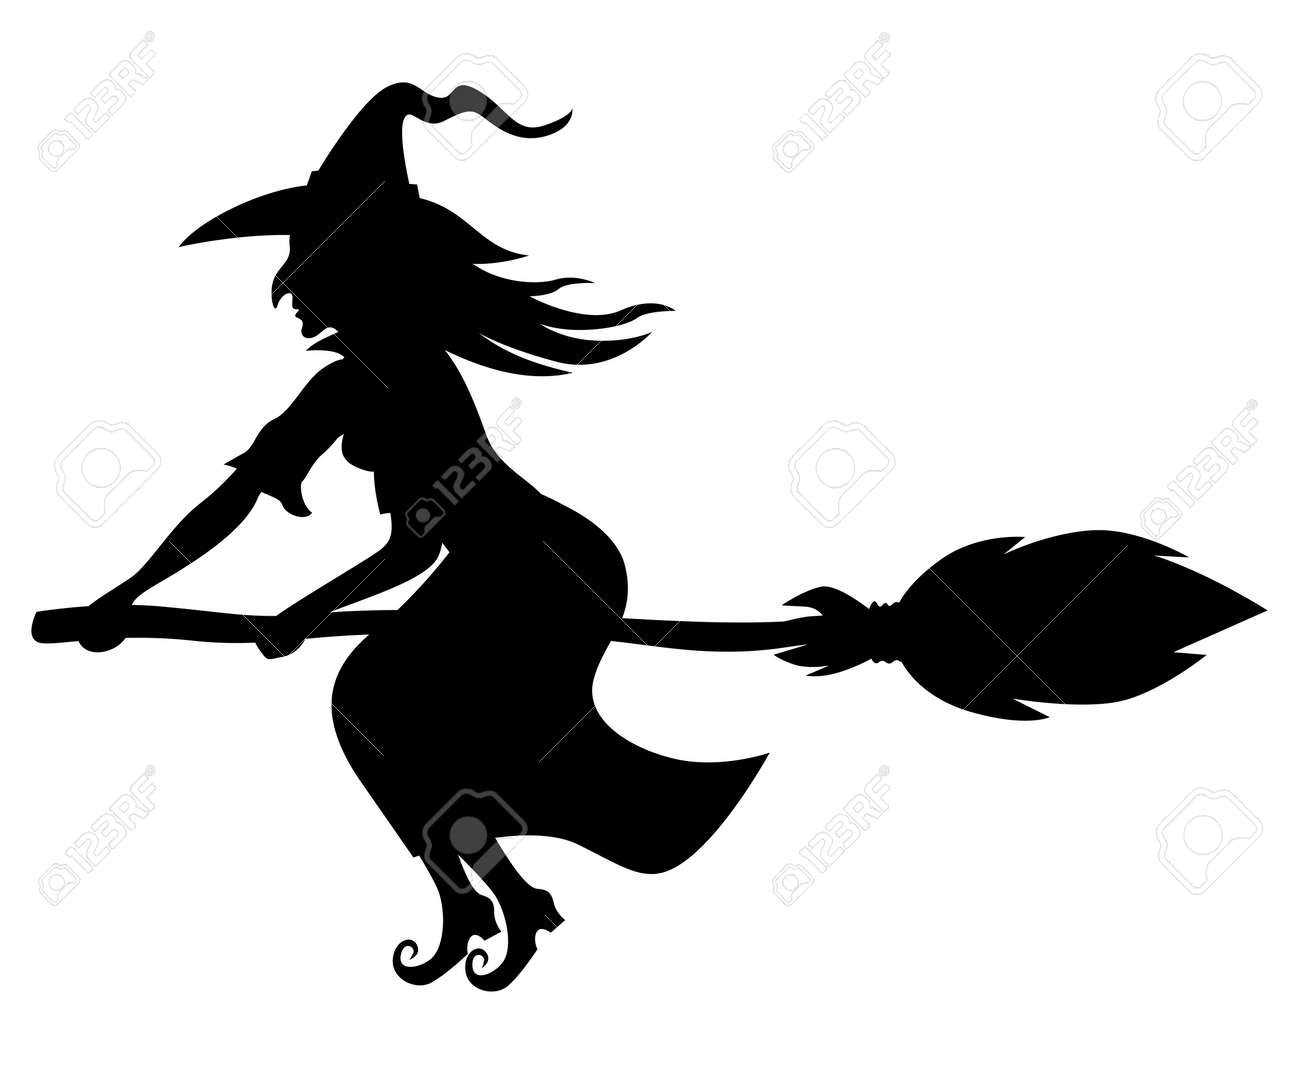 Vector illustrations of silhouette witch flying on broomstick - 44692503